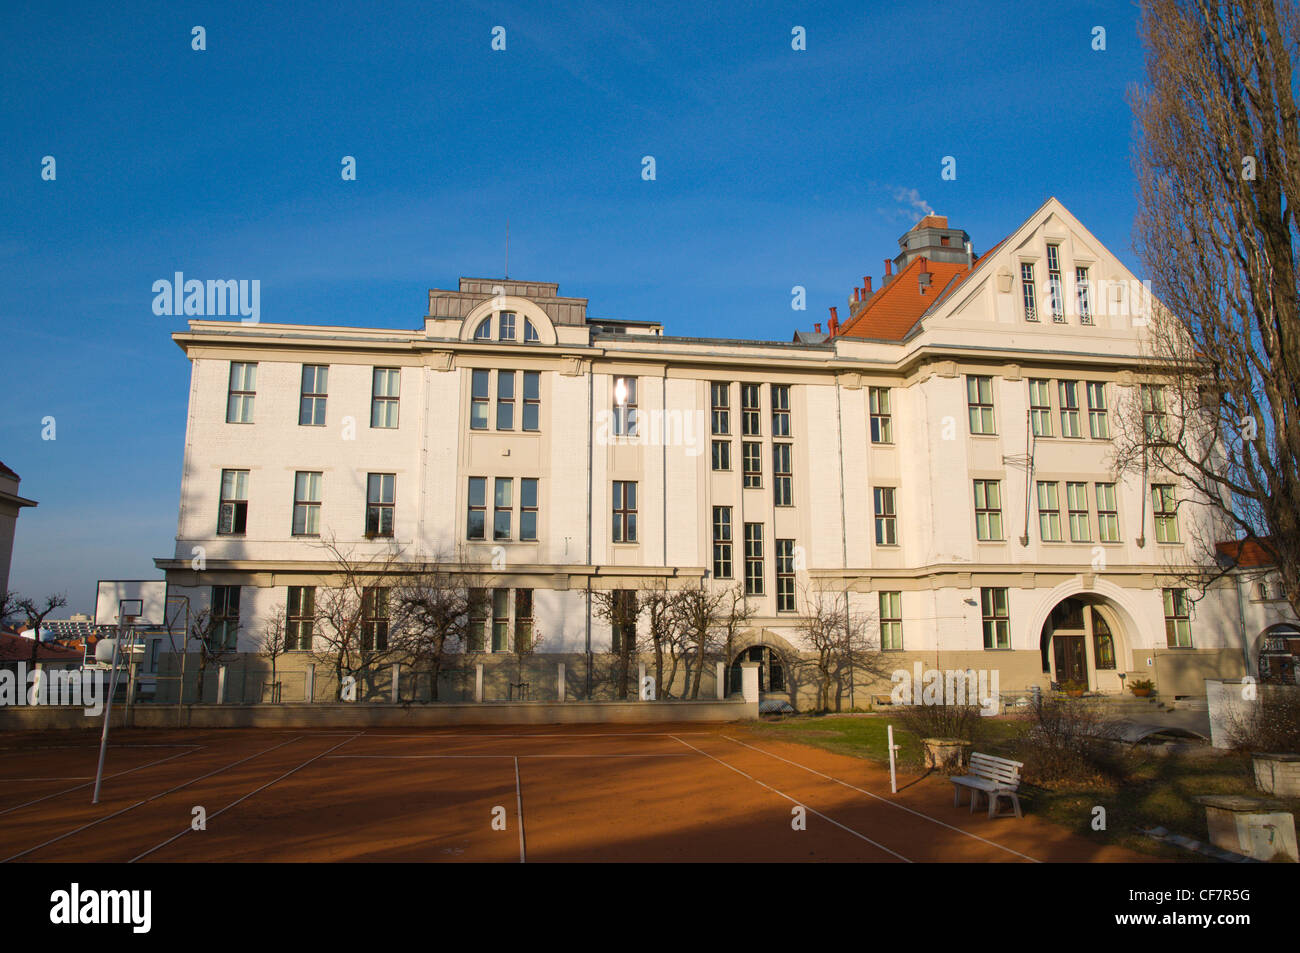 Fyzikalni Ustav the Institute of Physics the Department Cukrovarnicka in Orechovka district Prague Czech Republic - Stock Image